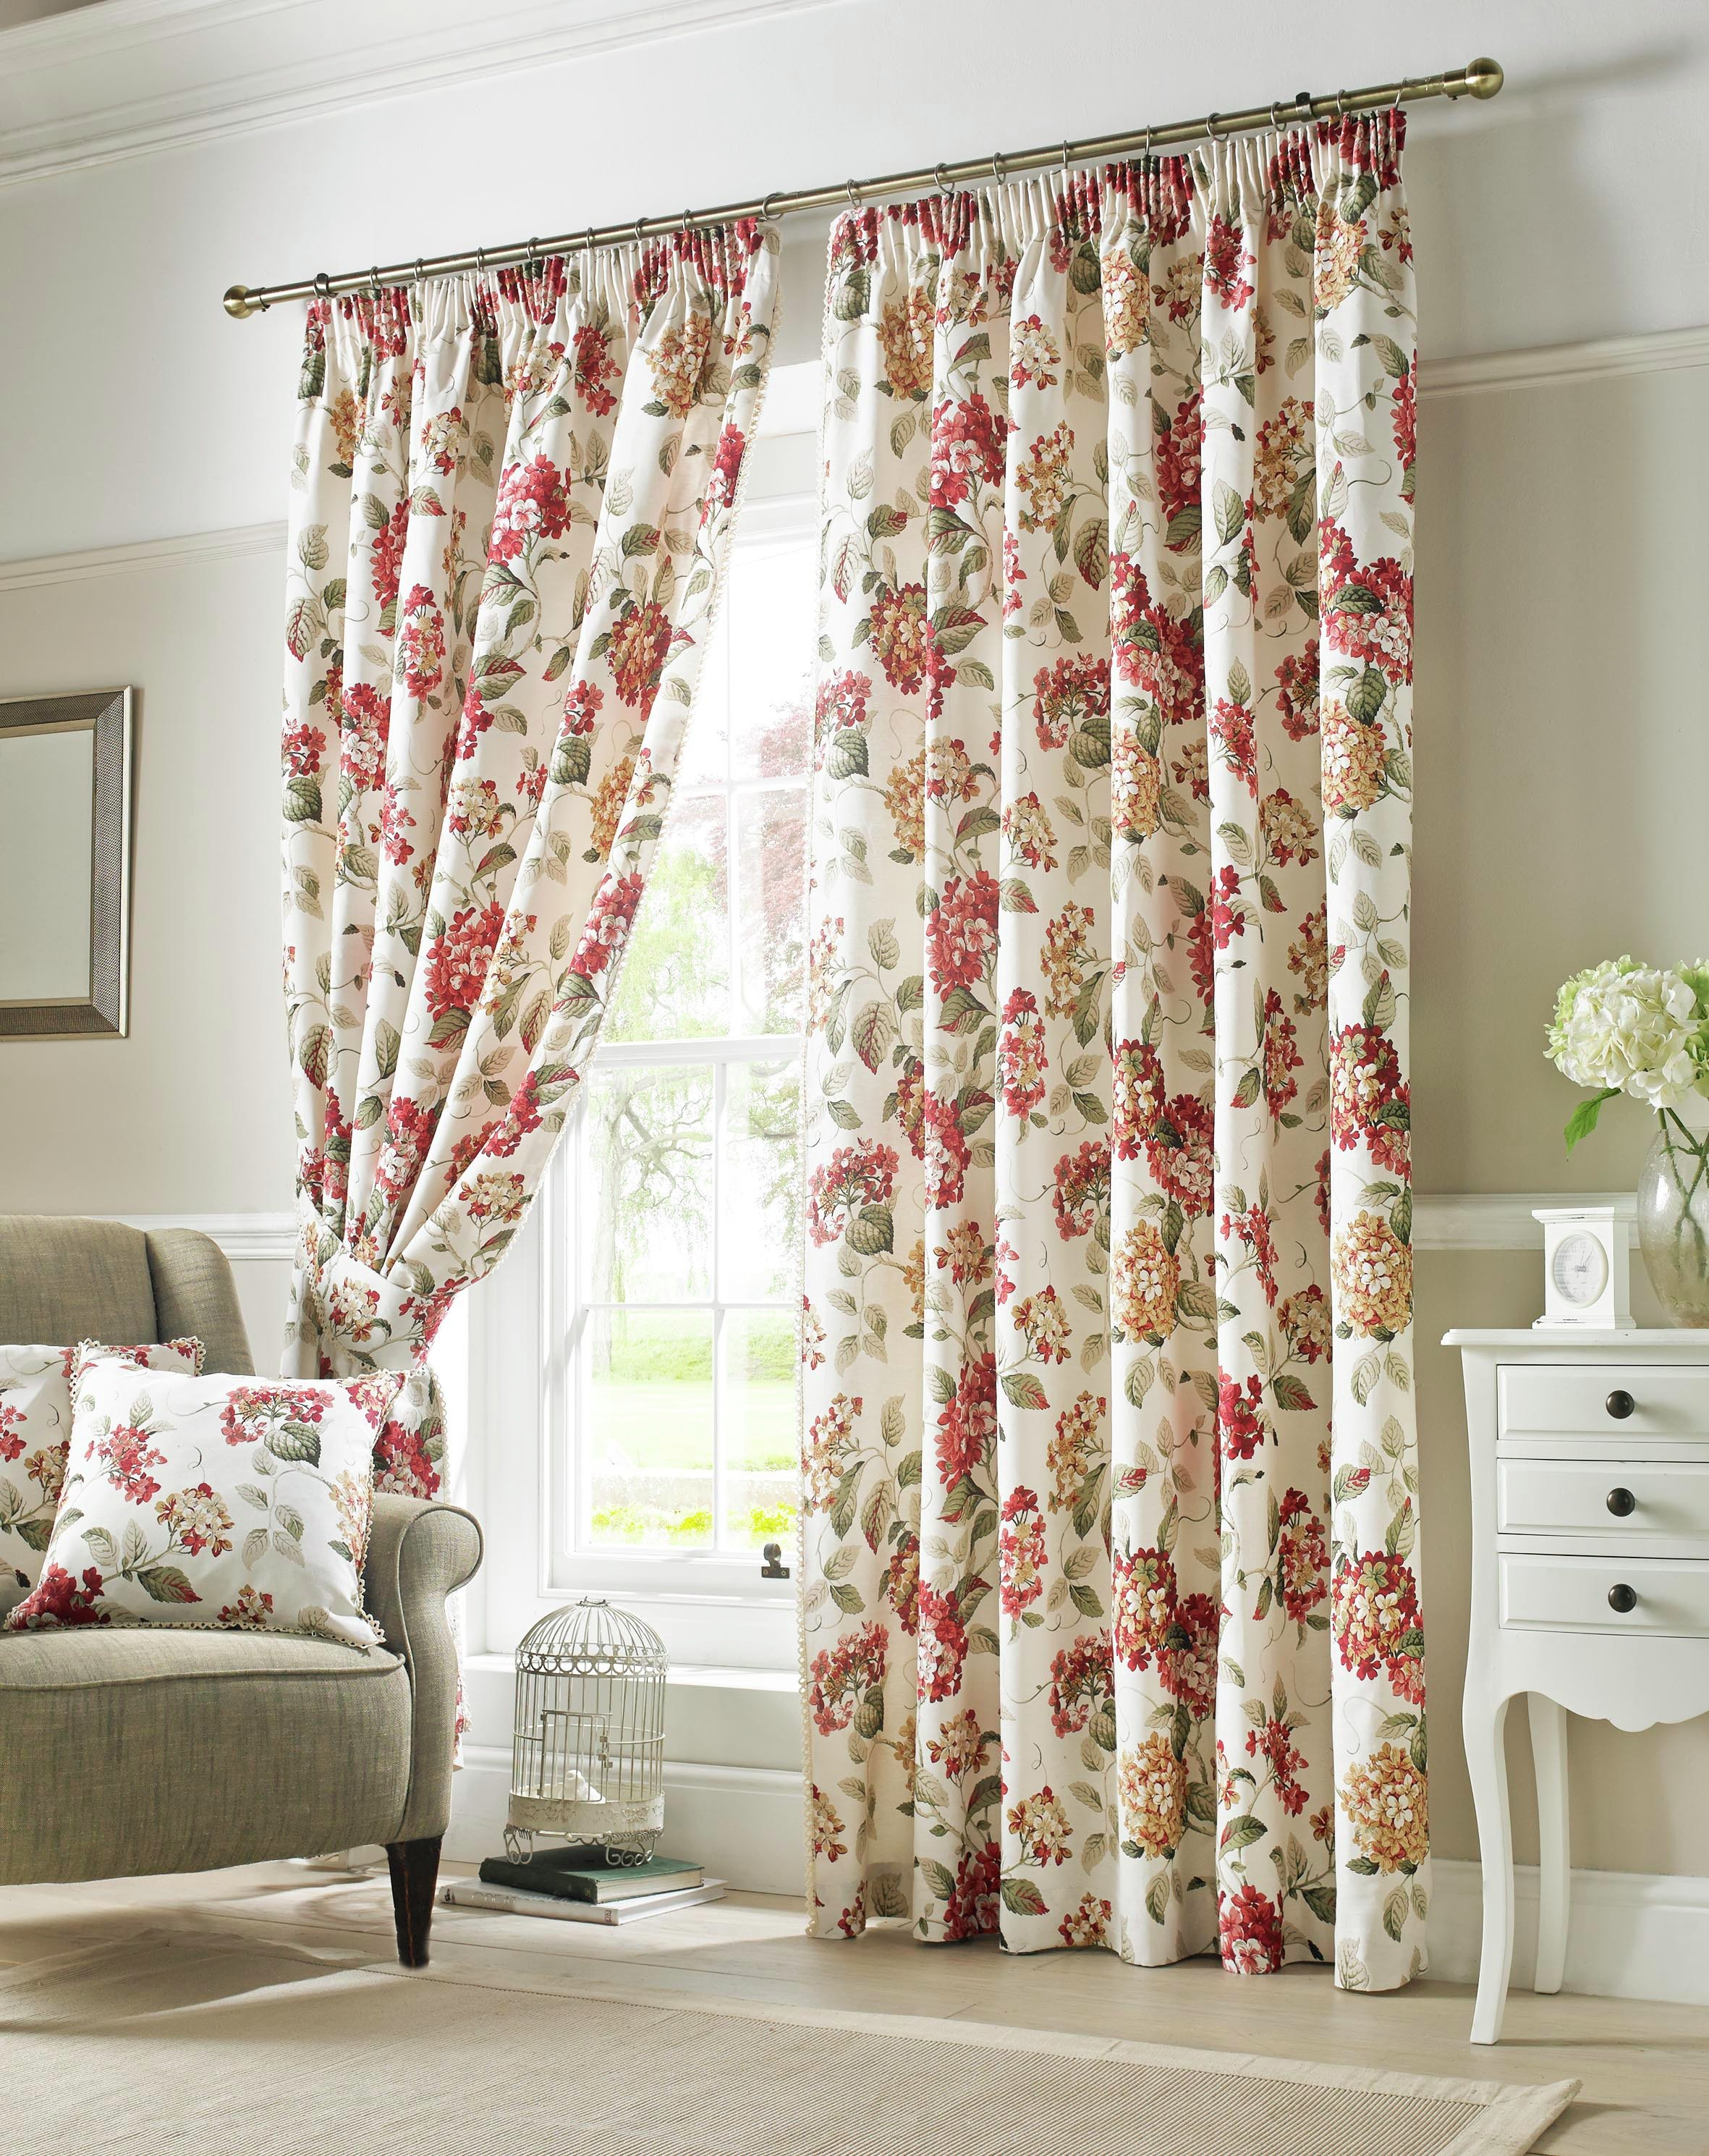 Image of Carnaby Lined Pencil Pleat Curtains - 168x229cm - Chintz.